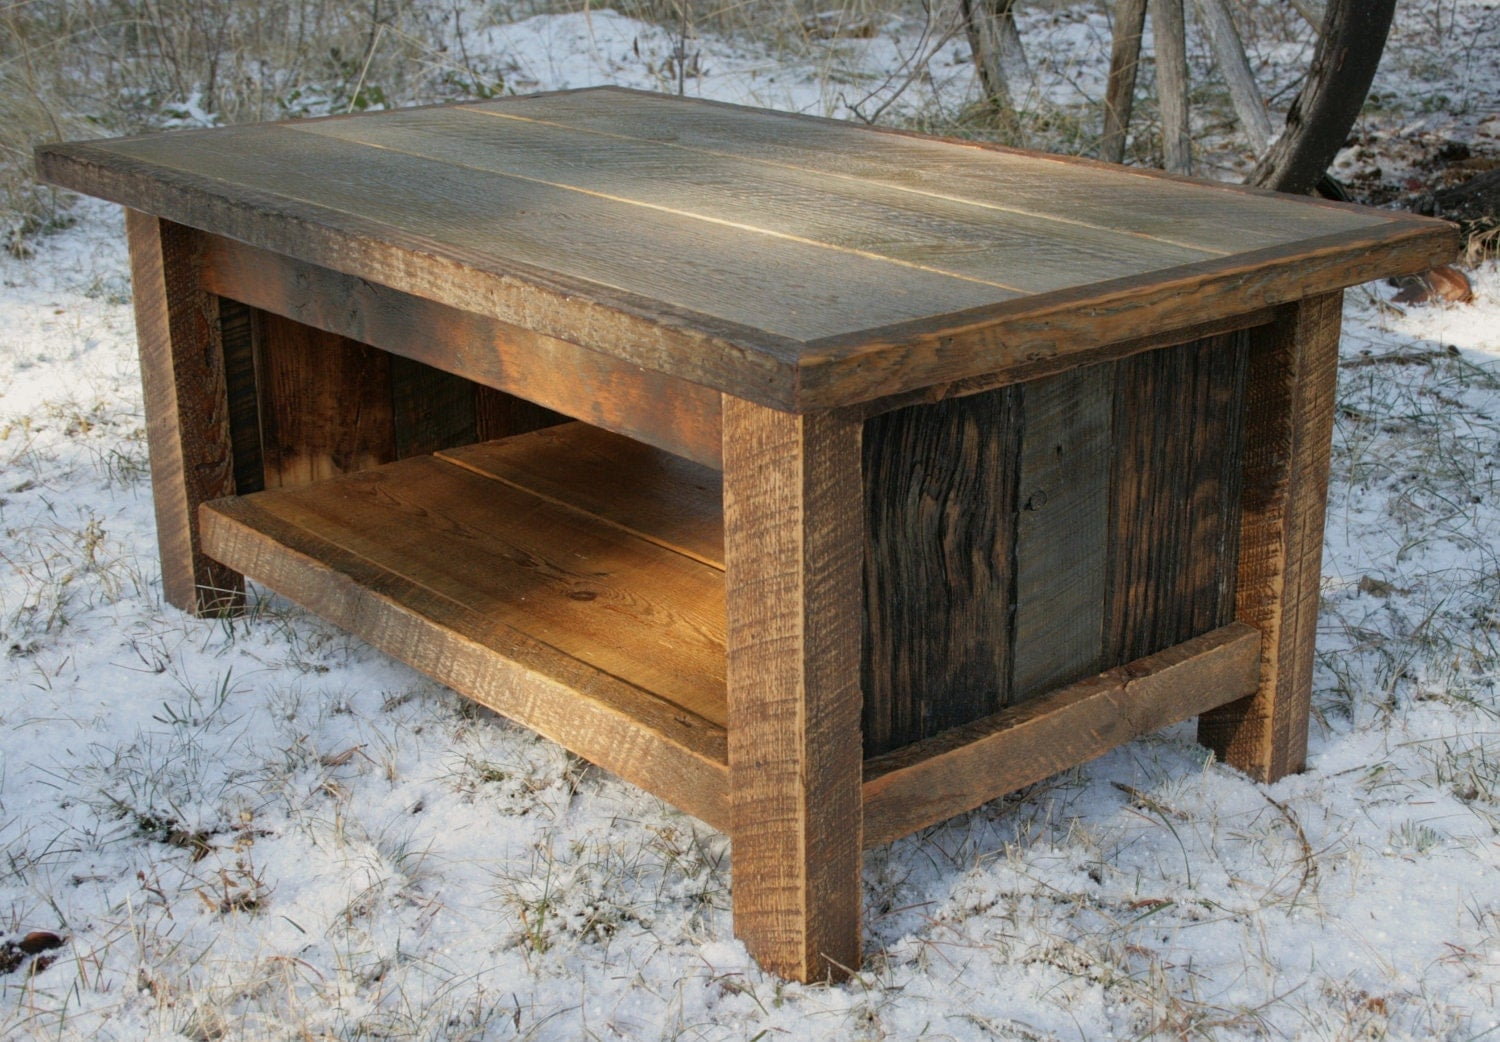 Rustic reclaimed coffee table by echopeakdesign on etsy Coffee tables rustic